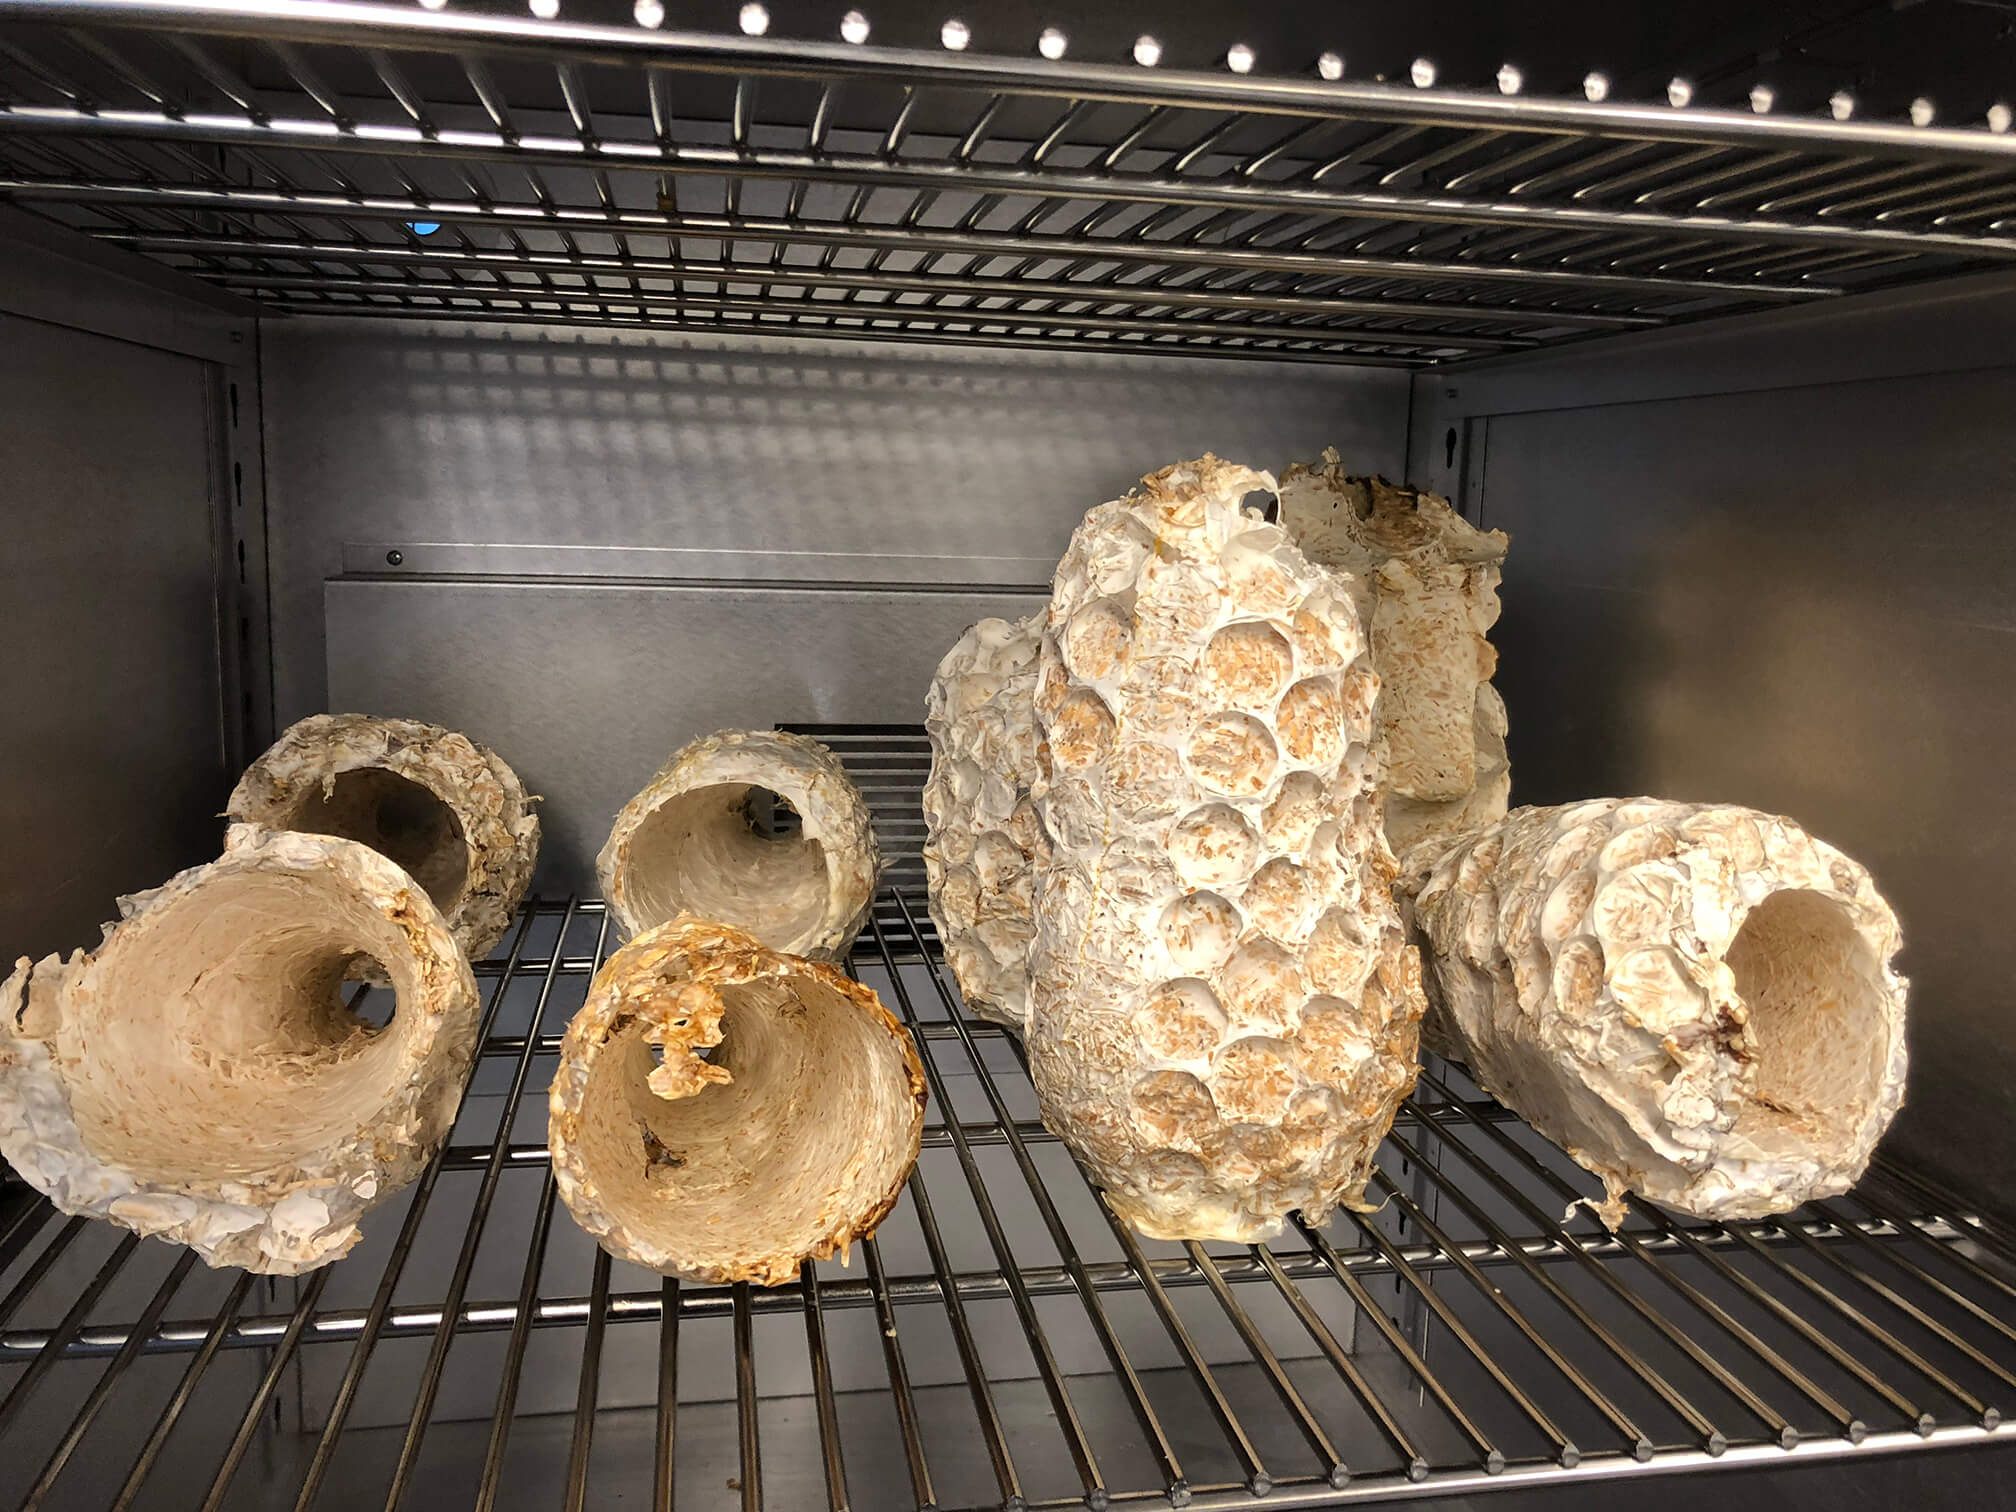 Mycelium lampshades in the curing oven